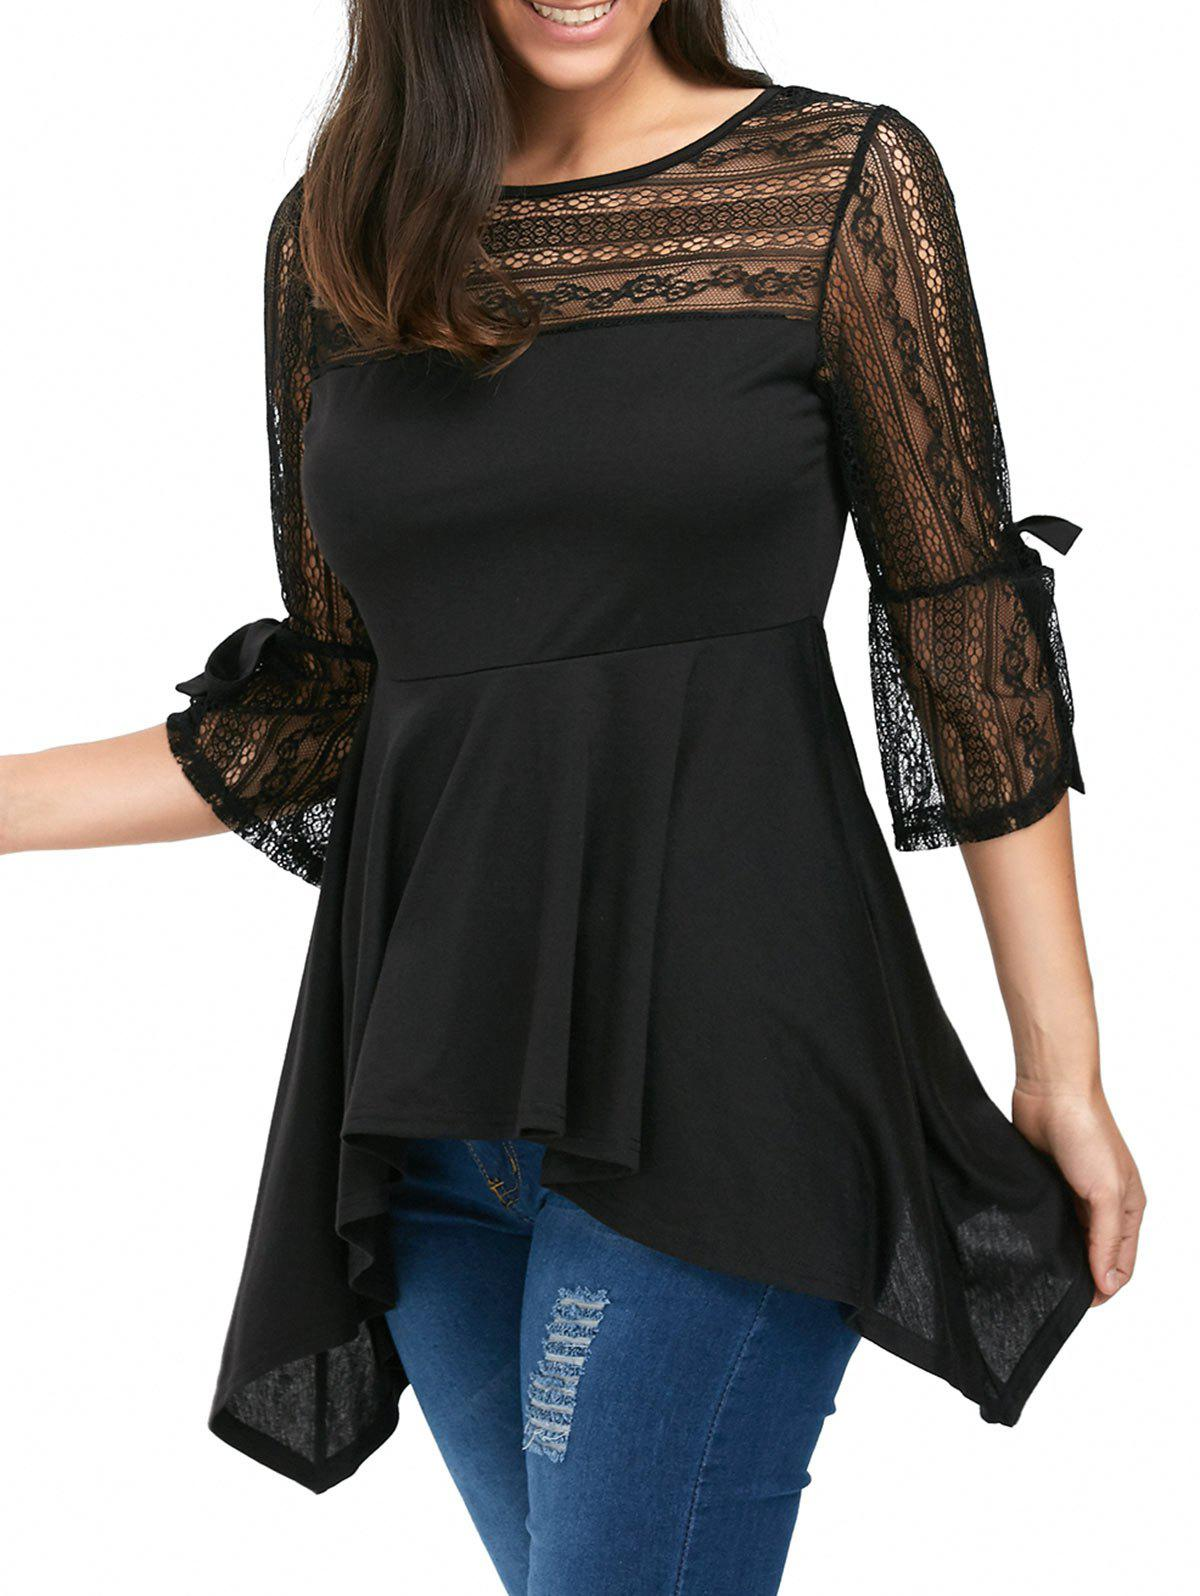 Lace Panel Empire Waist Handkerchief Peplum Top - BLACK L